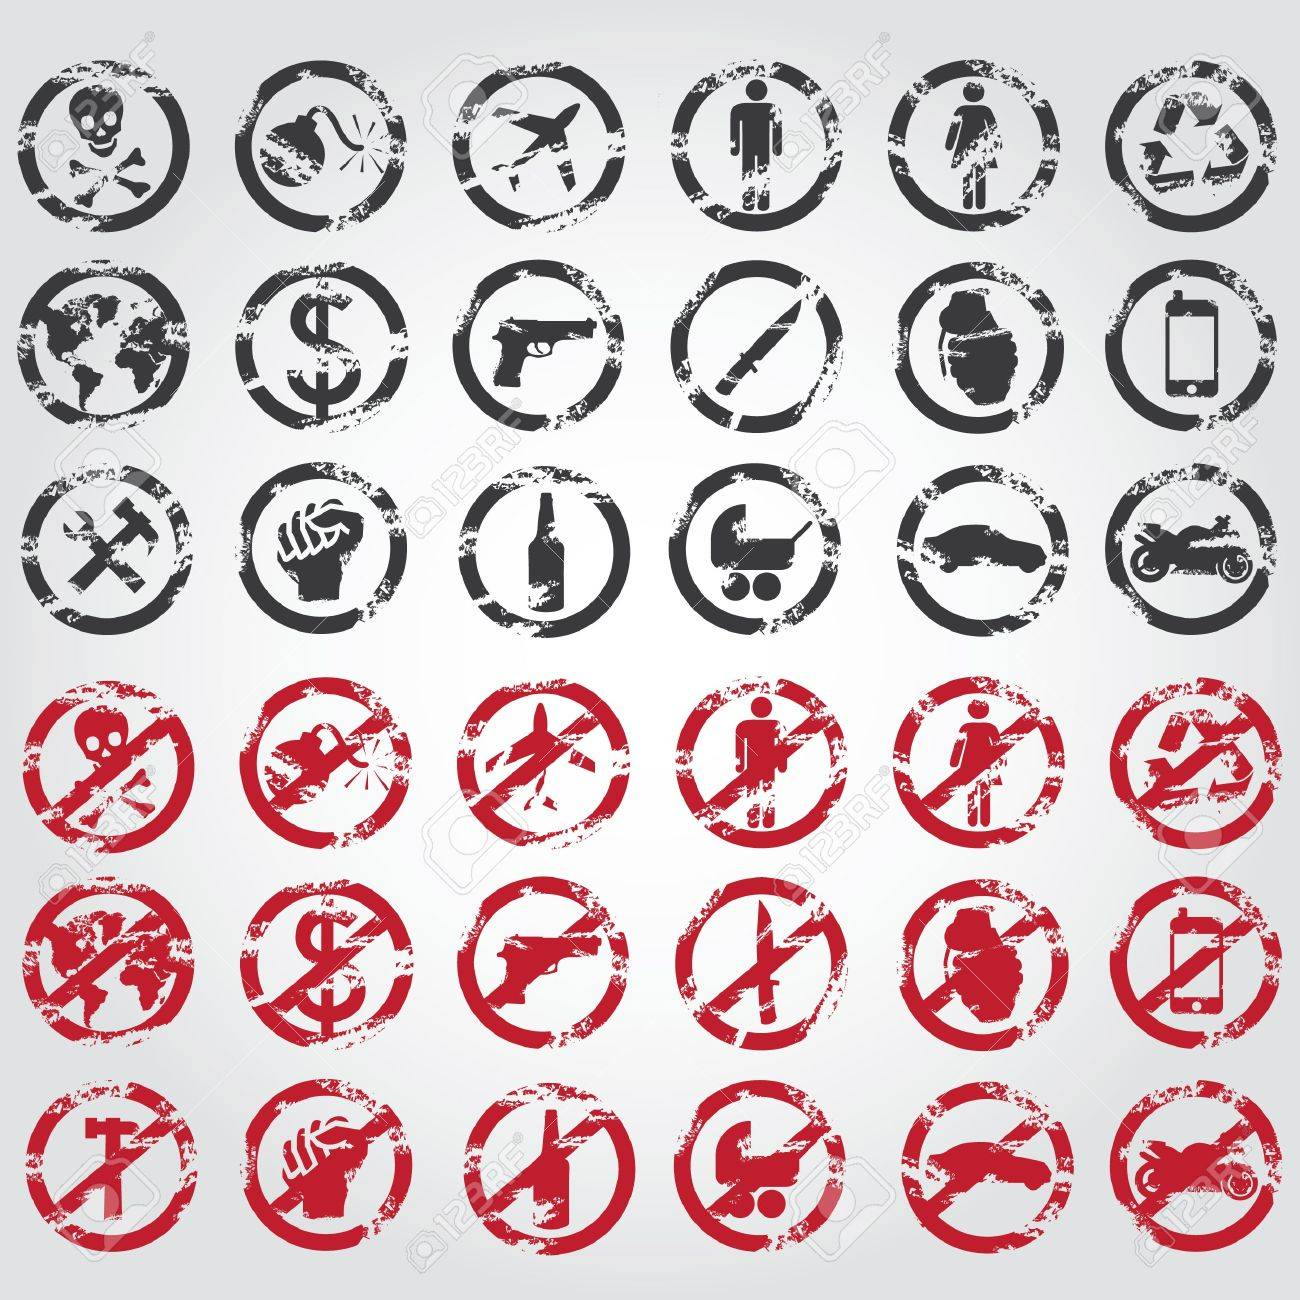 Grunge signs pack plus restrictive signs Stock Vector - 10605590